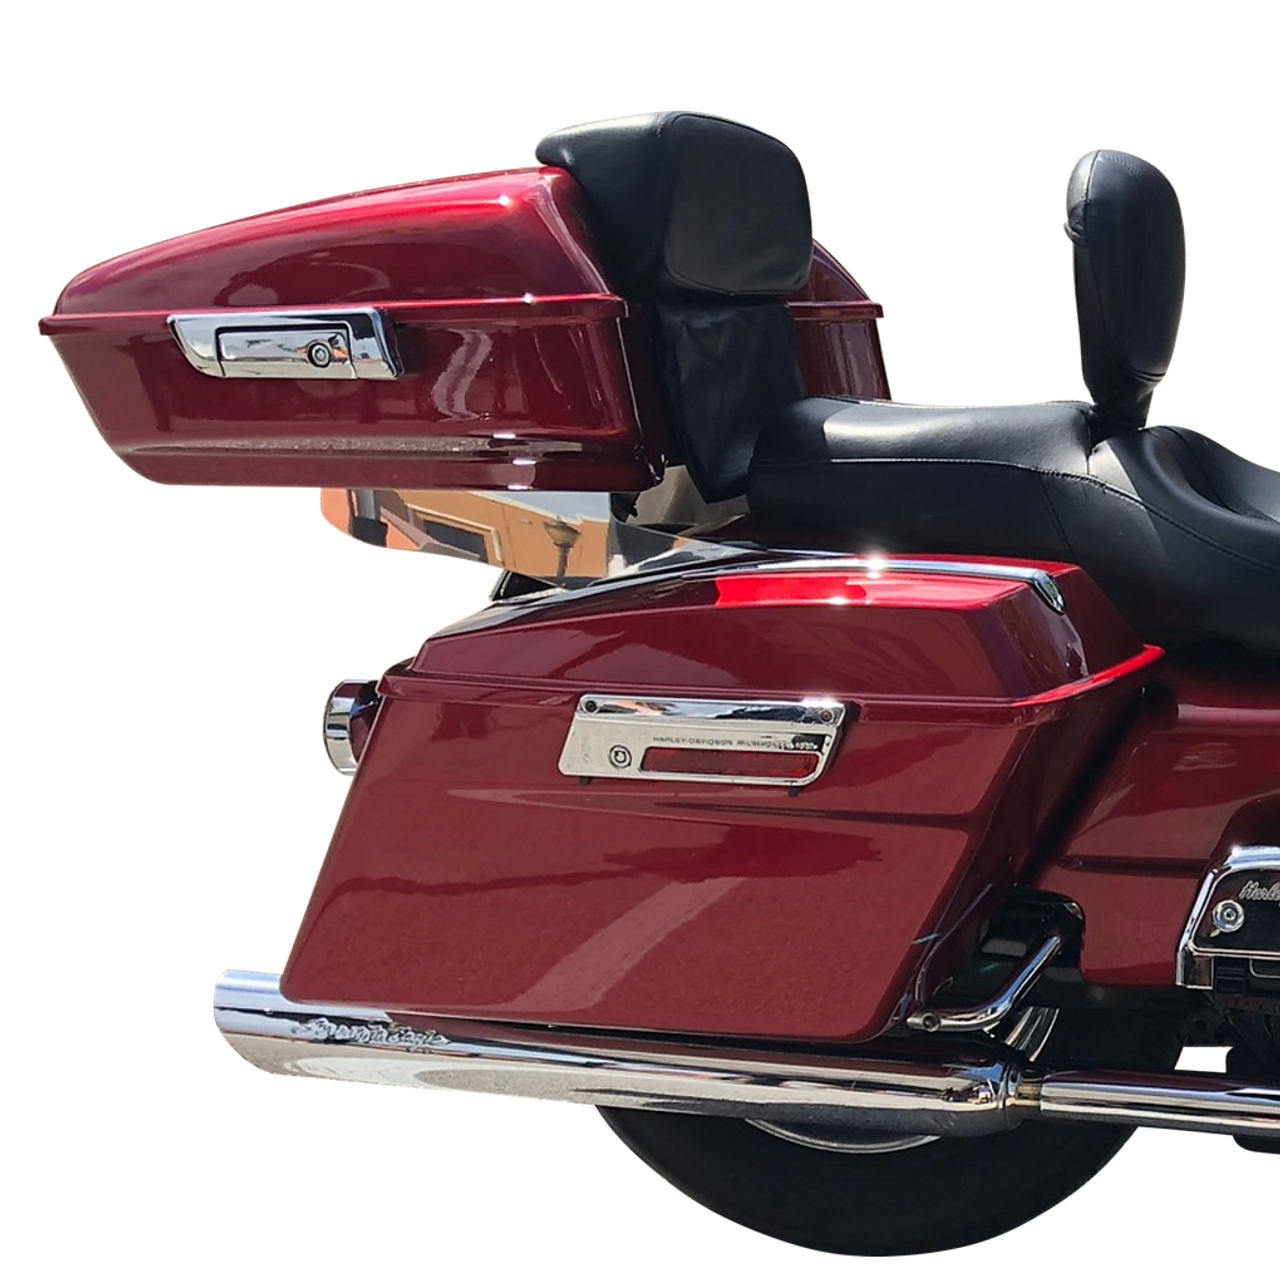 1999 Harley classic with the 97-08 sissy bar tour pack rack